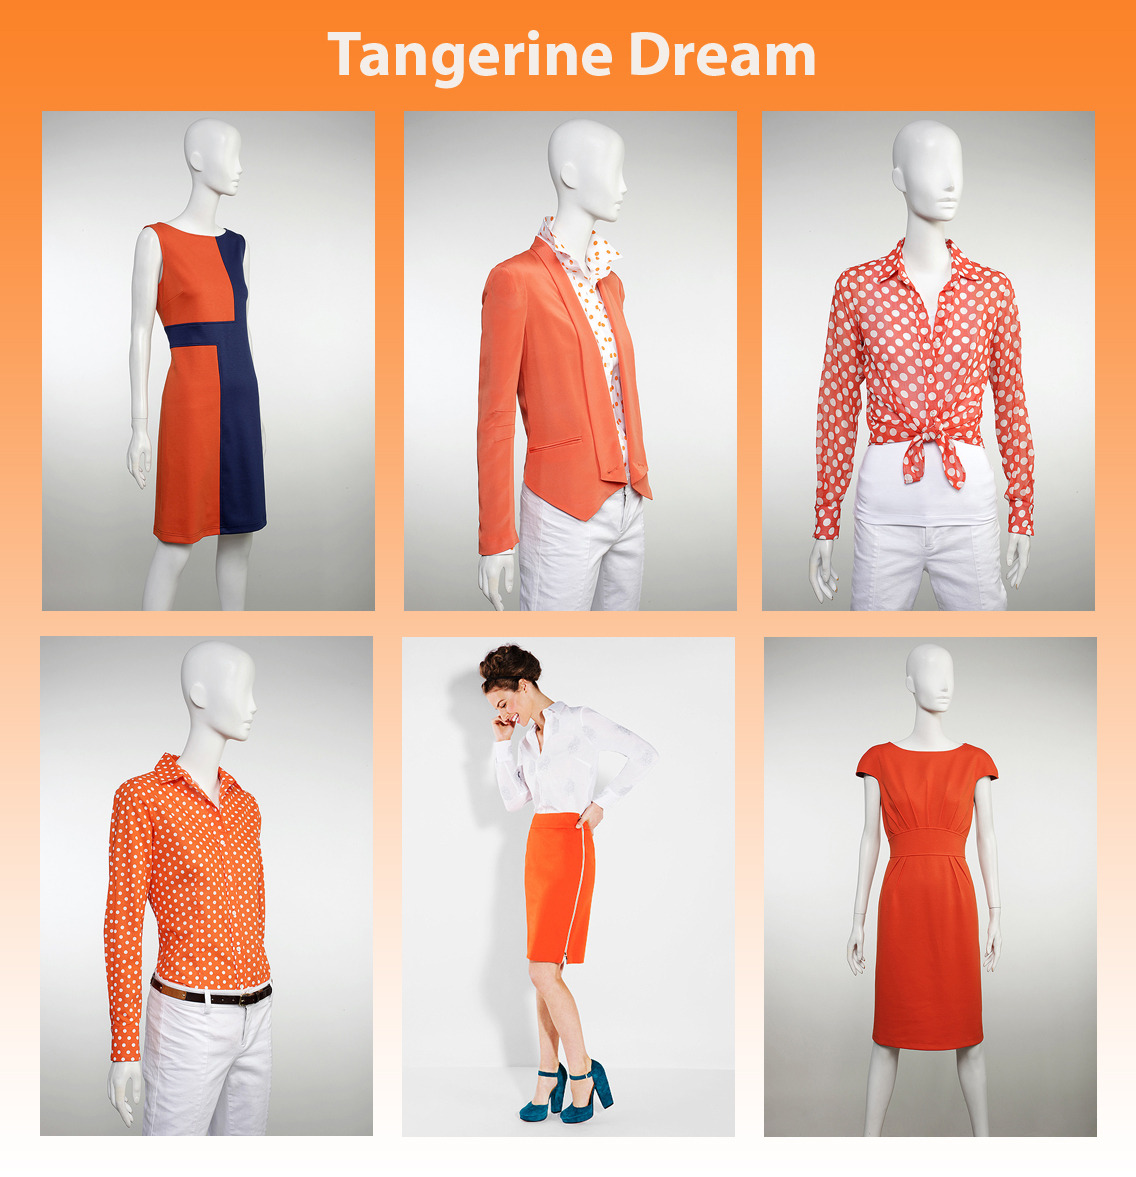 Attention grabbing tangerine is the color du jour and we're loving it! Bright and bold, this show stopping hue will help you stand out in a sea of other colors and will definitely turn heads.  When pairing tangerine with other colors, we suggest steering clear of black and instead choosing neutral colors such as khaki, cream, olive, yellows, browns of nearly every shade, and grey. Orange teamed with deep blue is another hot color combo that looks absolutely fabulous! If tangerine isn't the most flattering color on you but you still love the trend, you can always incorporate this juicy hue into your wardrobe with small accessories such as an orange handbag or a belt. This will add a pop of color without being too loud. Another easy way to incorporate the color is with a lip color in a coral, melon or mango shade which is fun and flirty for the Spring. Pictured (Clockwise from top left): Searle Sleeveless Color Block Dress Rebecca Minkoff Neon Orange Becky Jacket Searle Semi Sheer Polka Dot Shirt Searle Cap Sleeve Sunburst Dress Paperwhite Side Zip Pencil Skirt Searle Printed Button Down Shirt